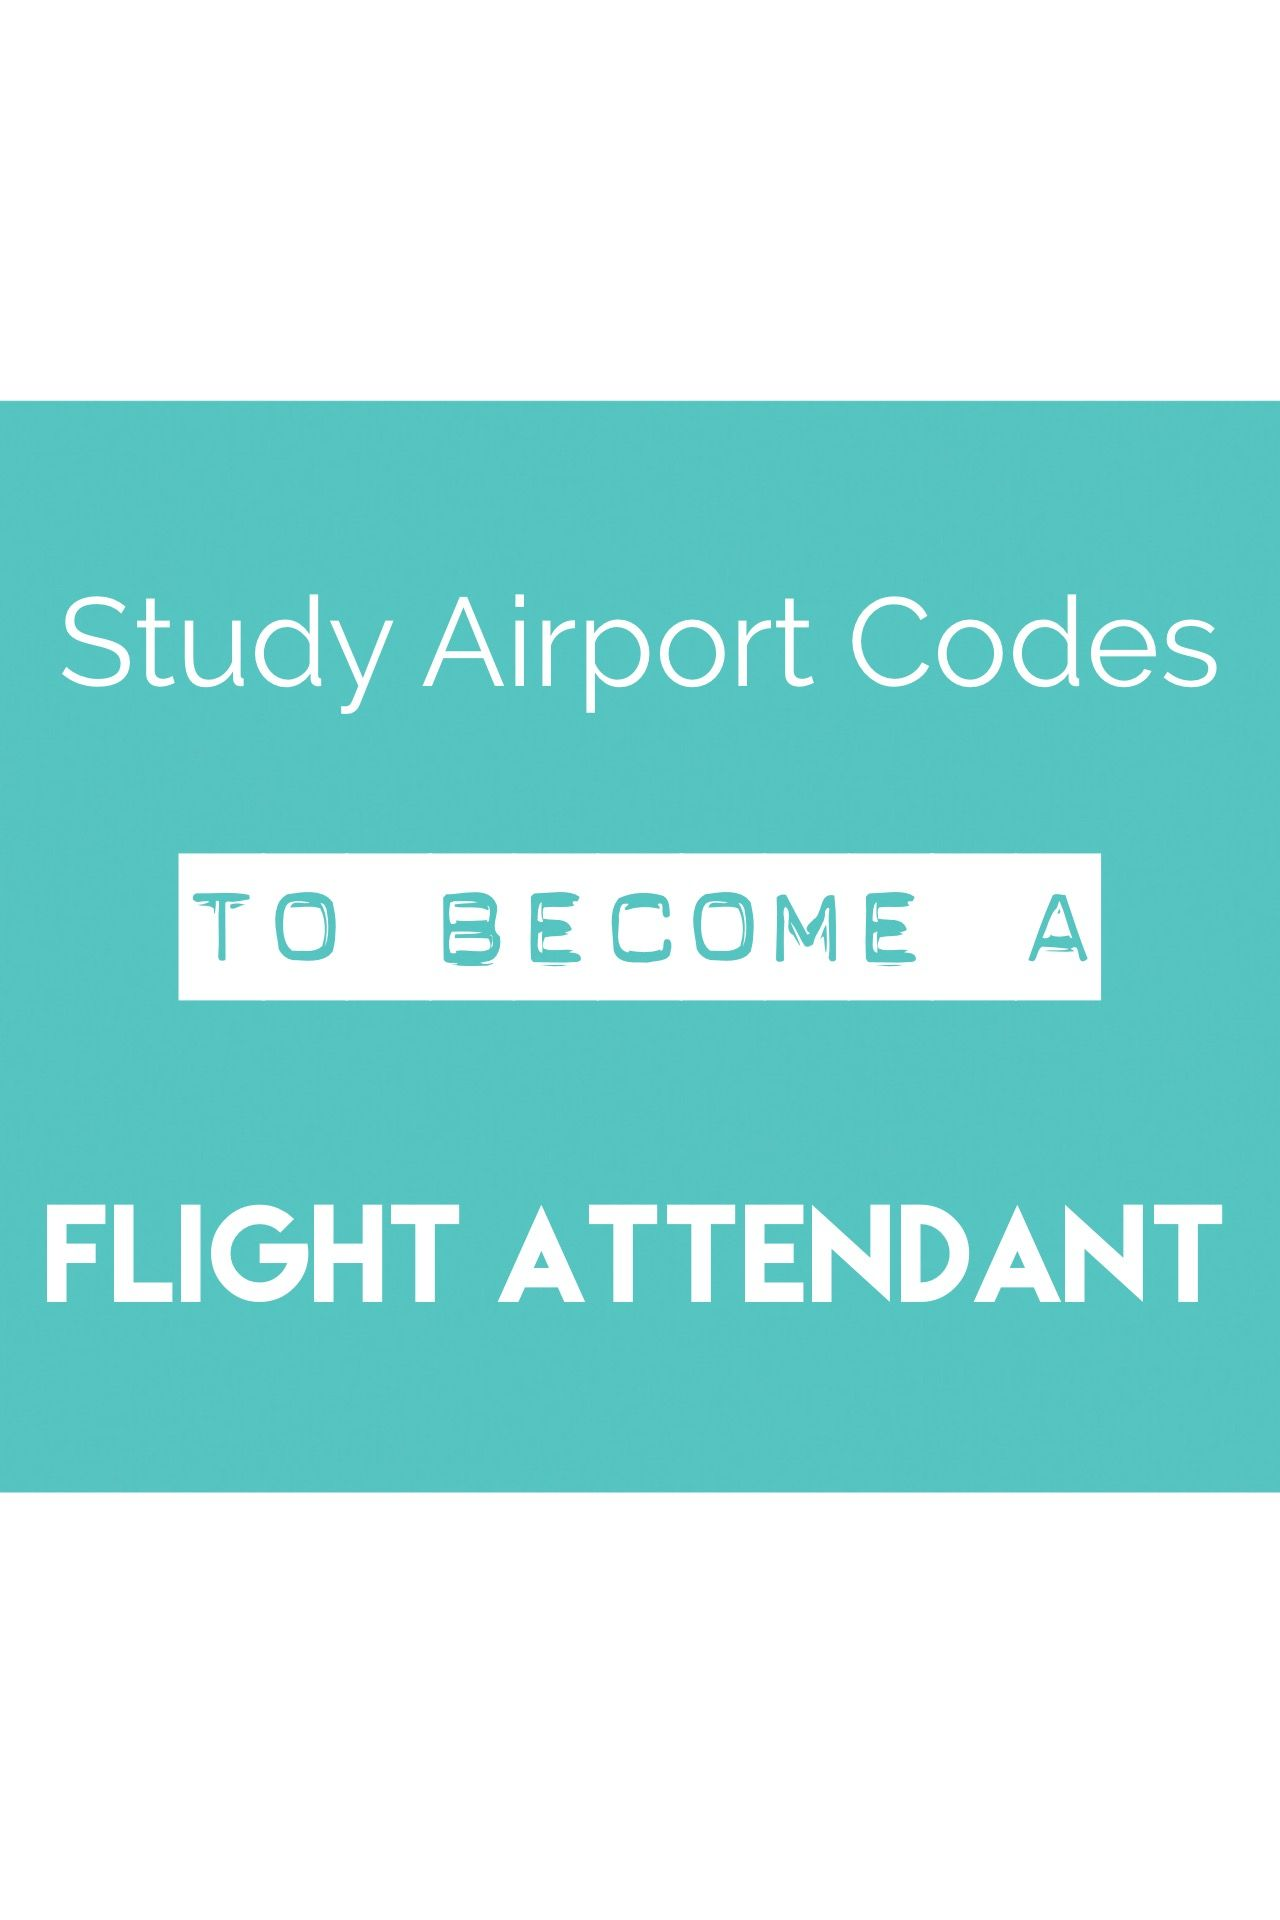 flight attendant interview questions and answers pdf getting learn your airport codes before training